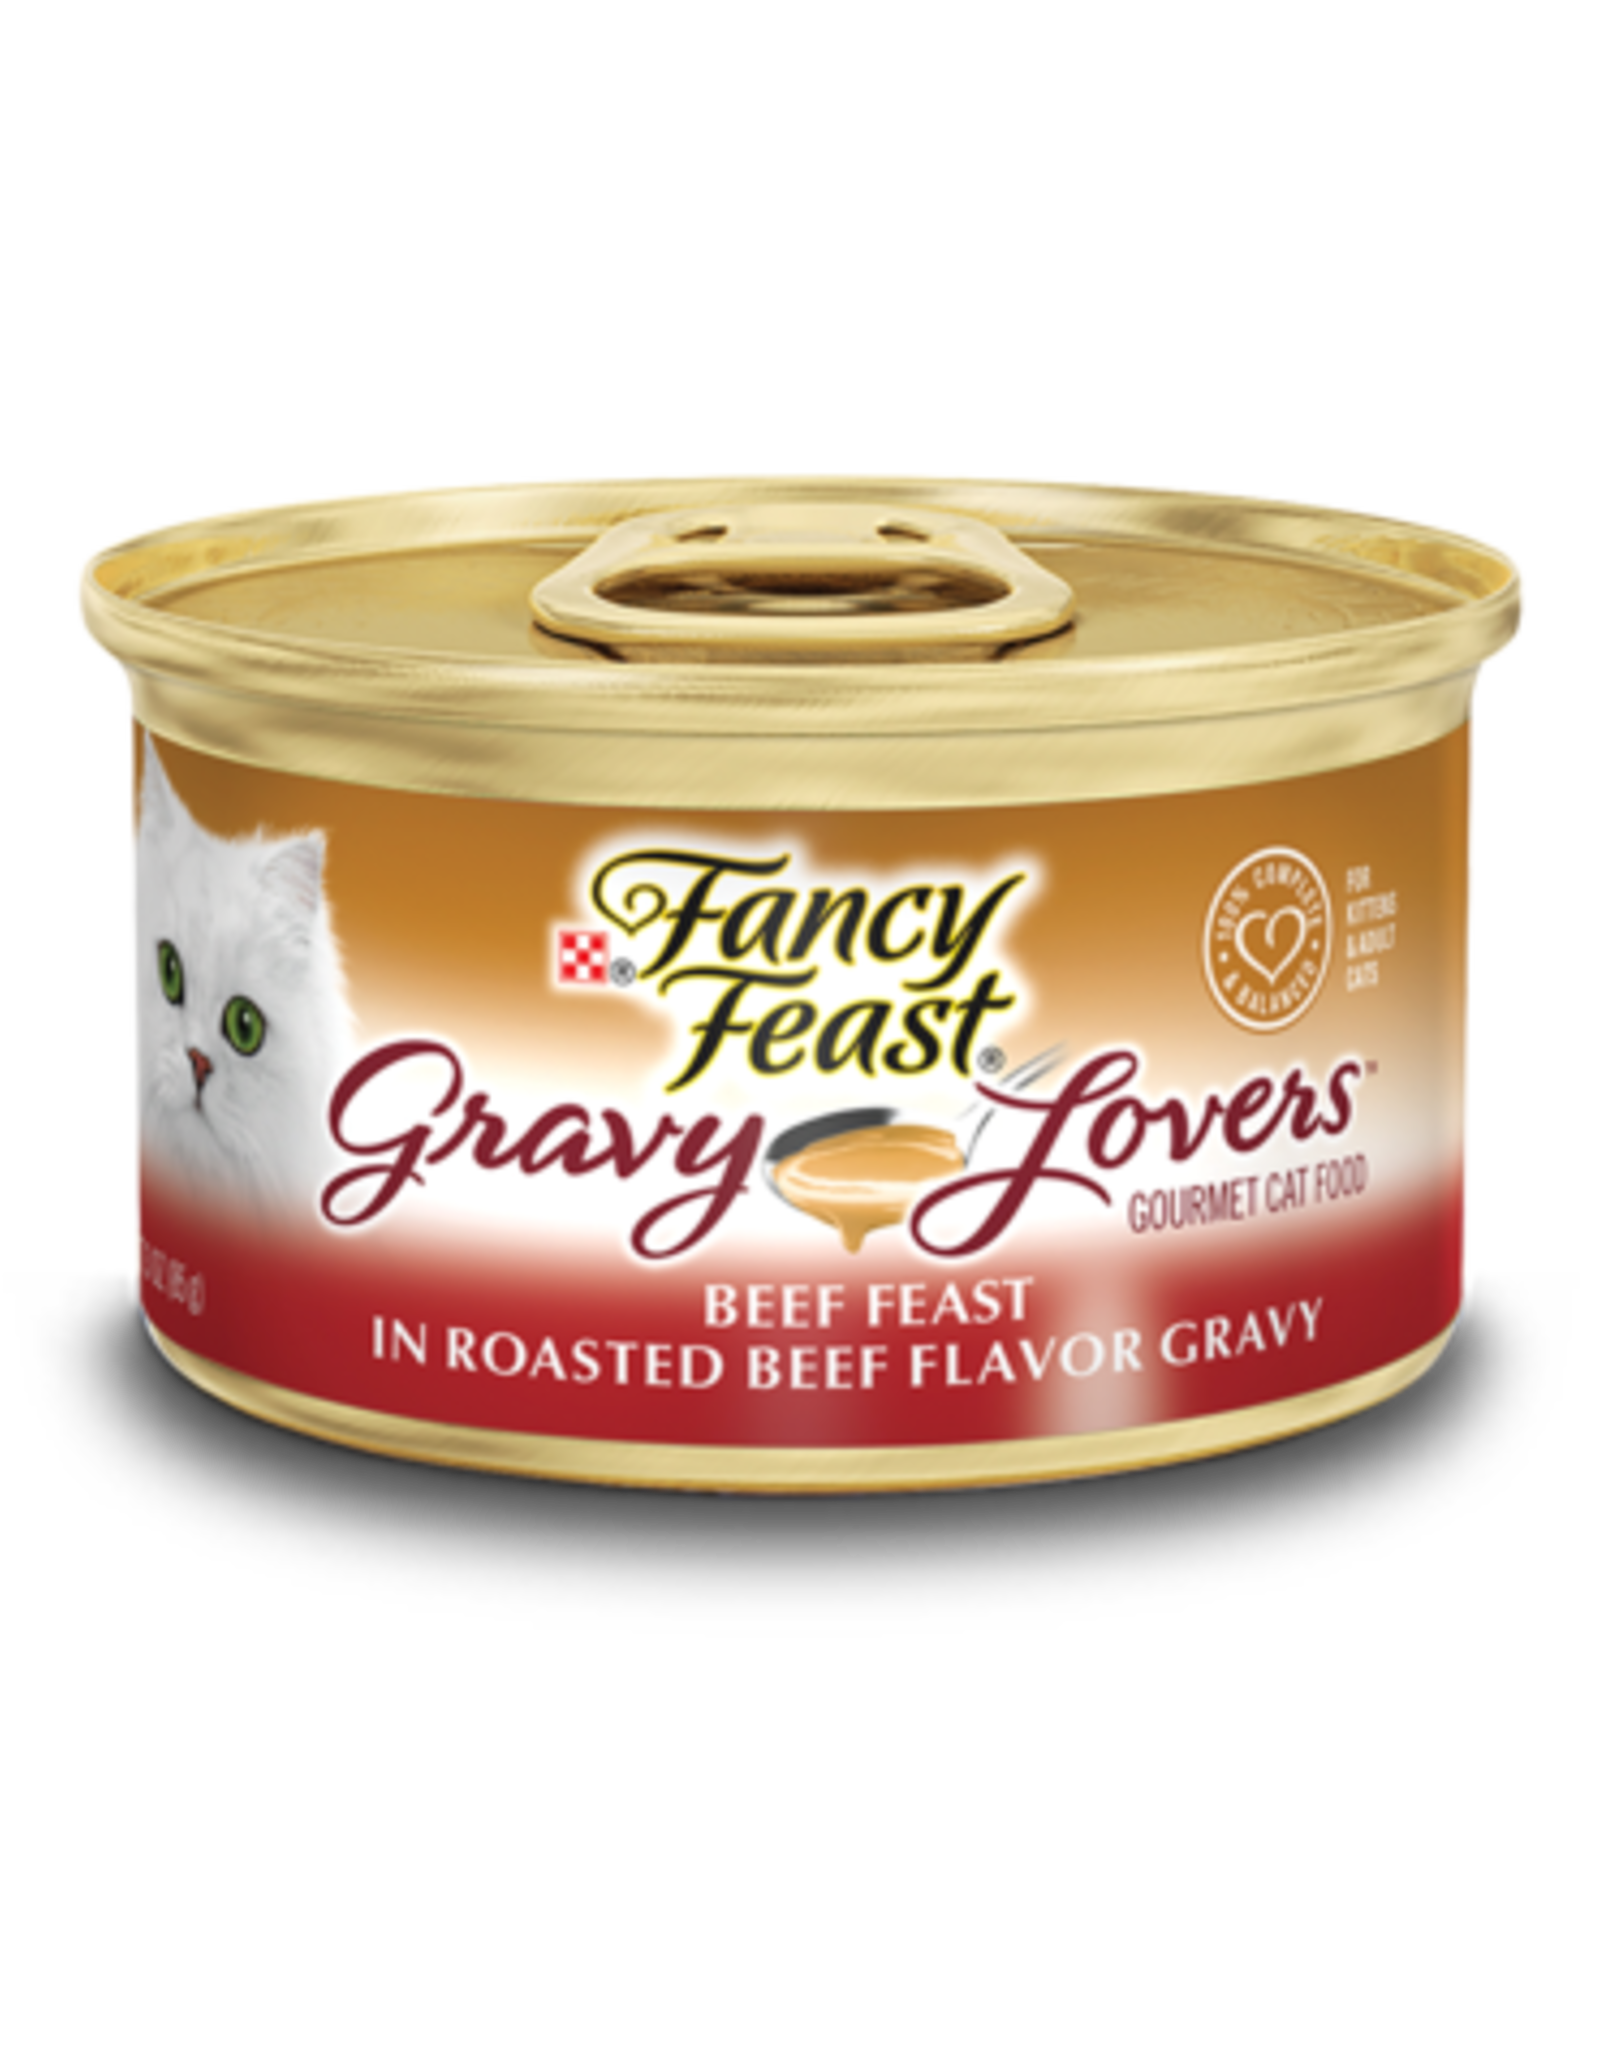 FANCY FEAST GRAVY LOVERS BEEF 3OZ CAN